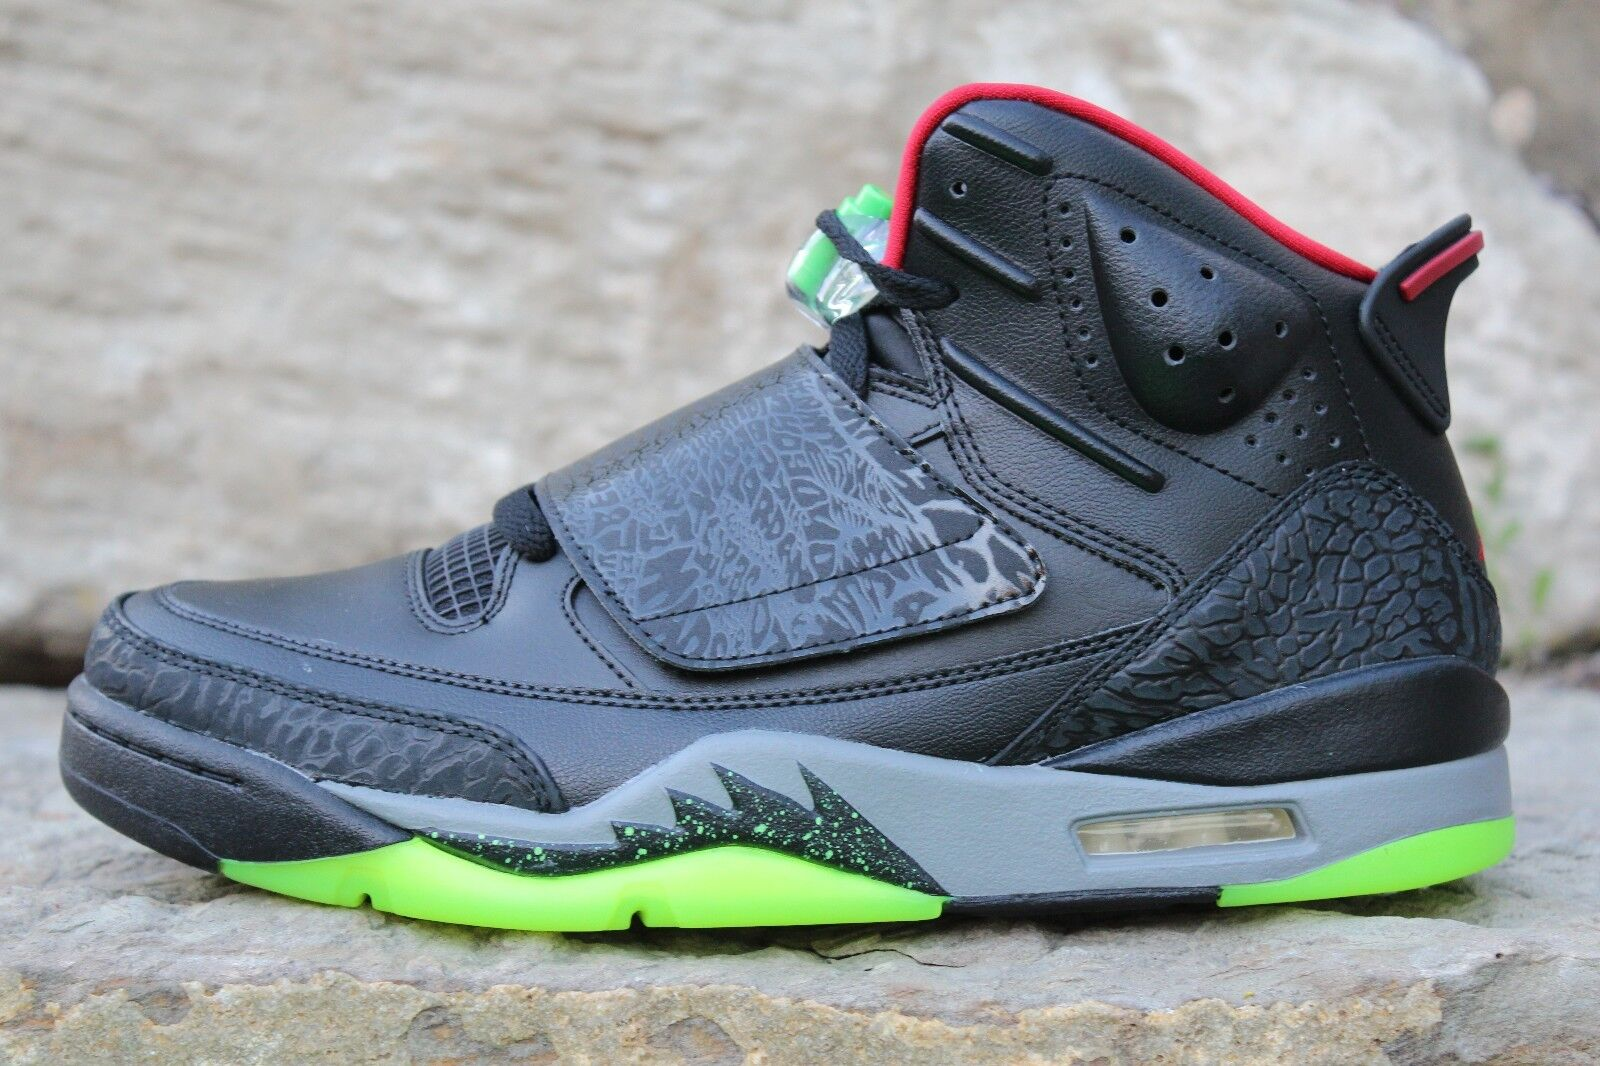 17 Nike Son of Mars  Marvin the Martian  shoes Sizes 8 9.5 10 512245 006